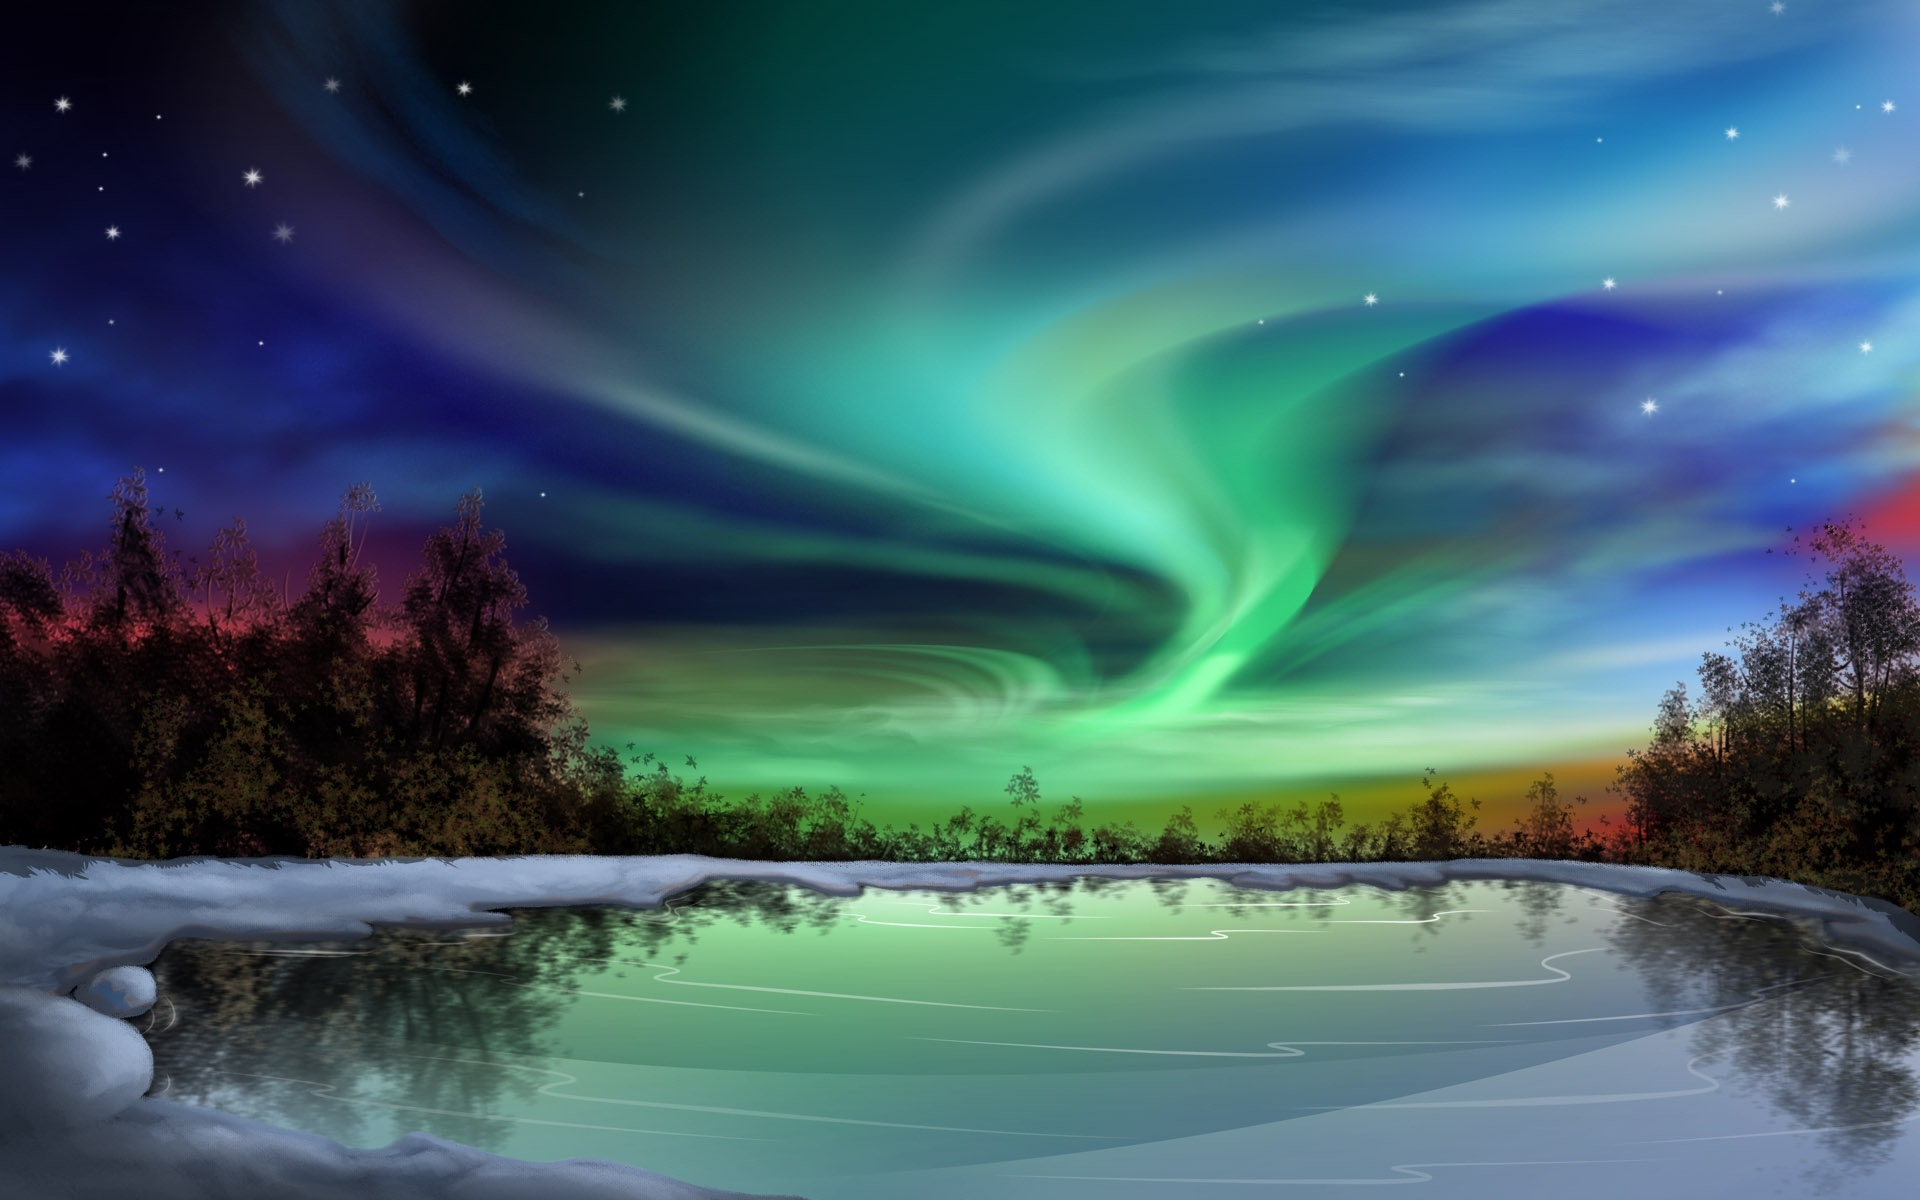 Nature night background hd desktop wallpapers 4k hd - Cool night nature backgrounds ...